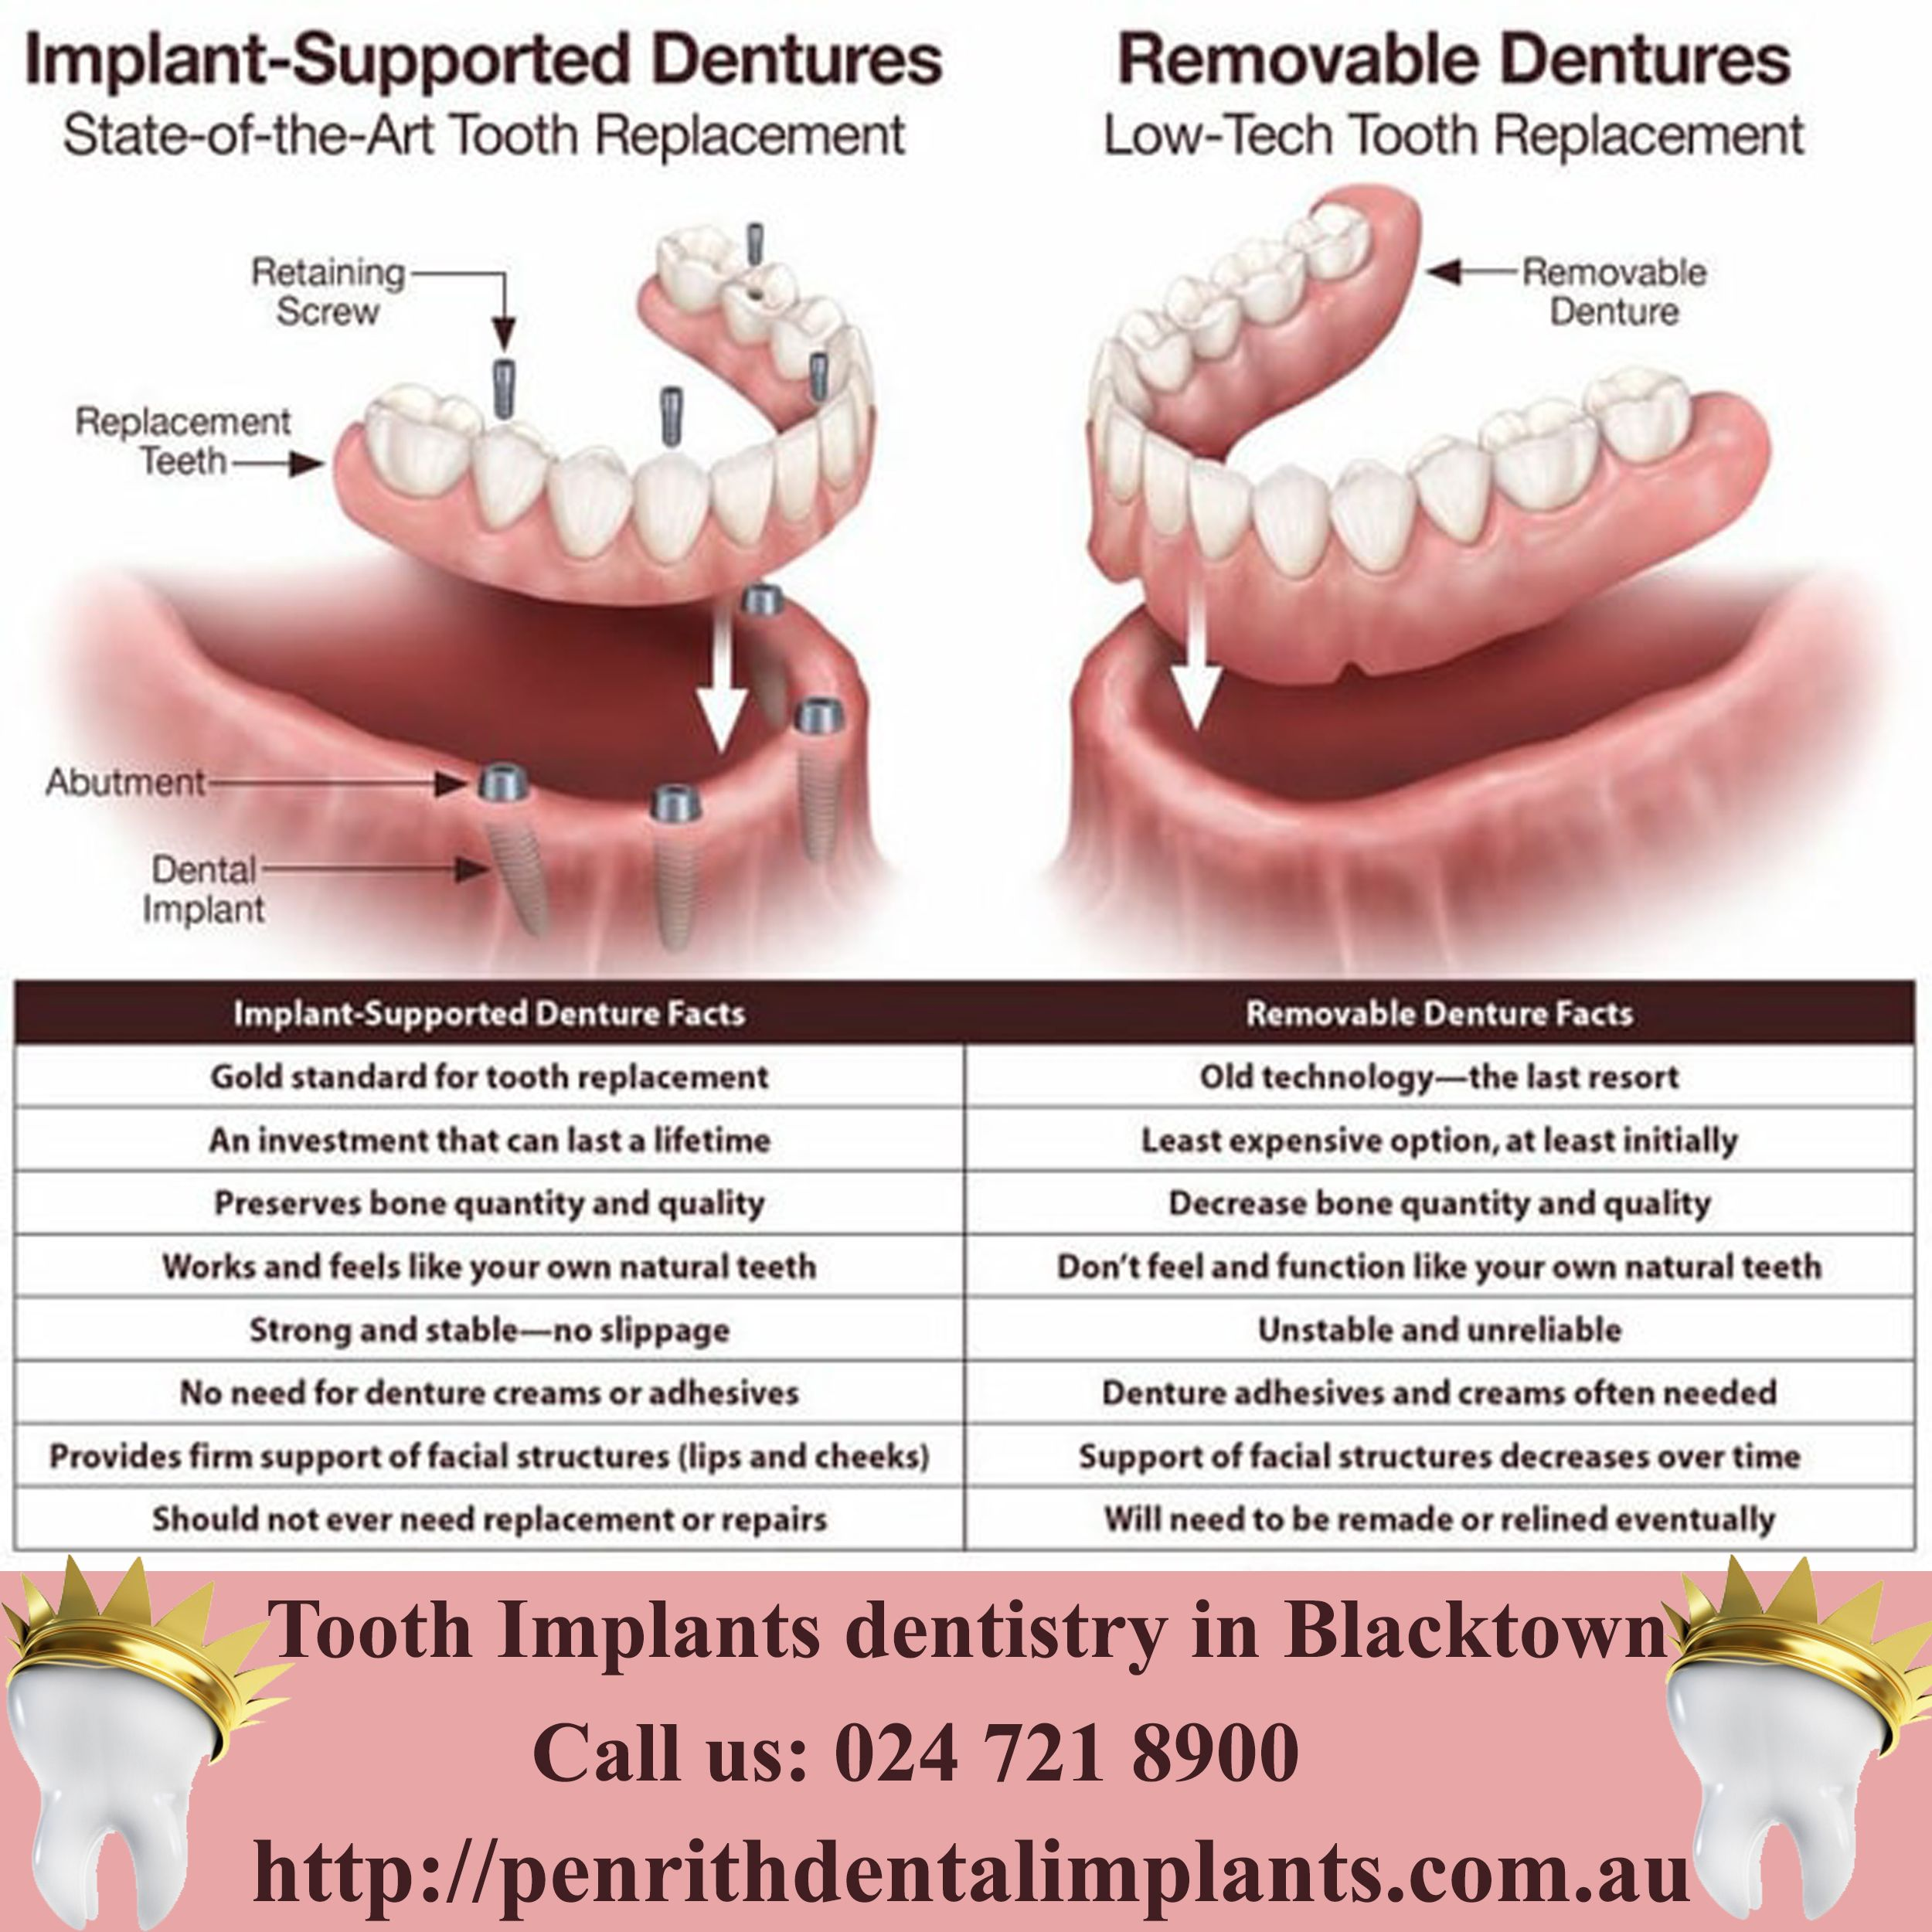 Payment Options For Implants Dentistry Blacktown Affordable Implants Implant Dentistry Tooth Implant Cost Dental Implants Cost